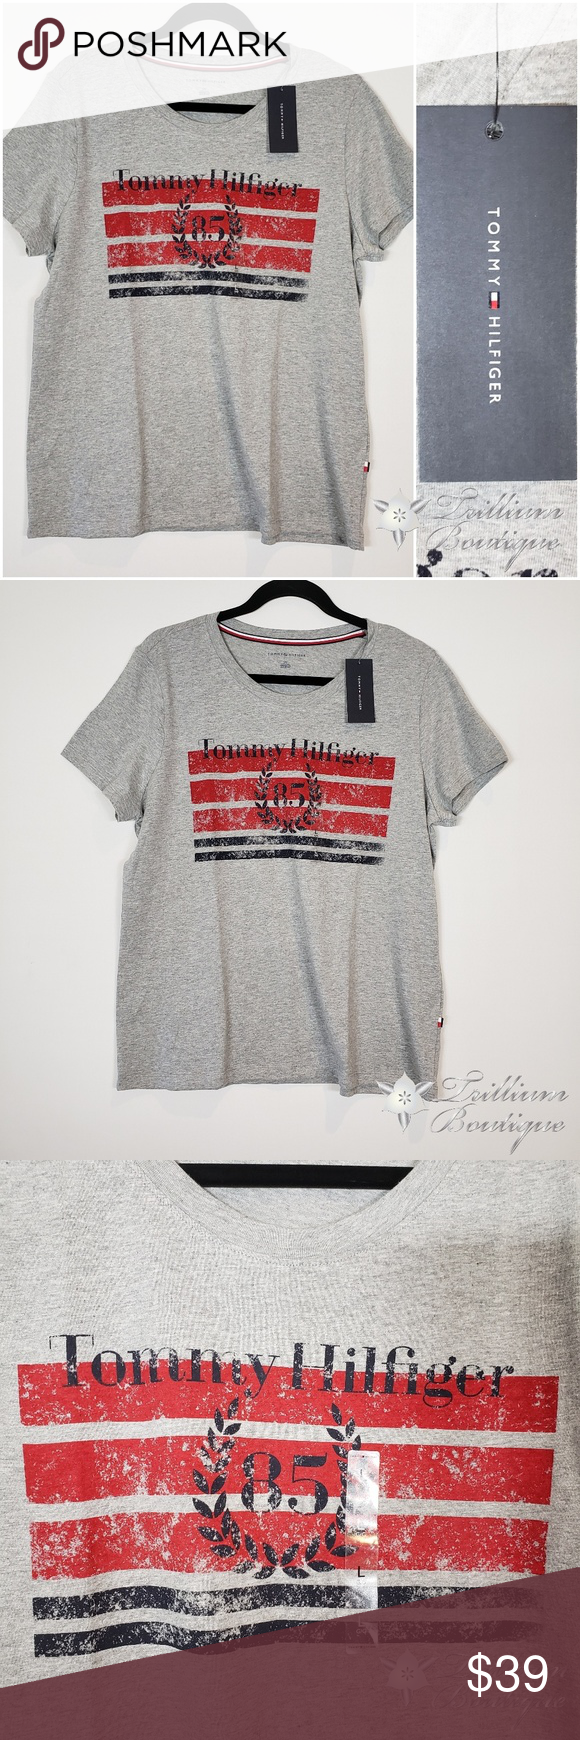 Tommy Hilfiger Gray 85 T Shirt Large Tommy Hilfiger Gray 85 T Shirt New With Tags Size Large Smoke Free Clothes Design Hilfiger T Shirts For Women [ 1740 x 580 Pixel ]